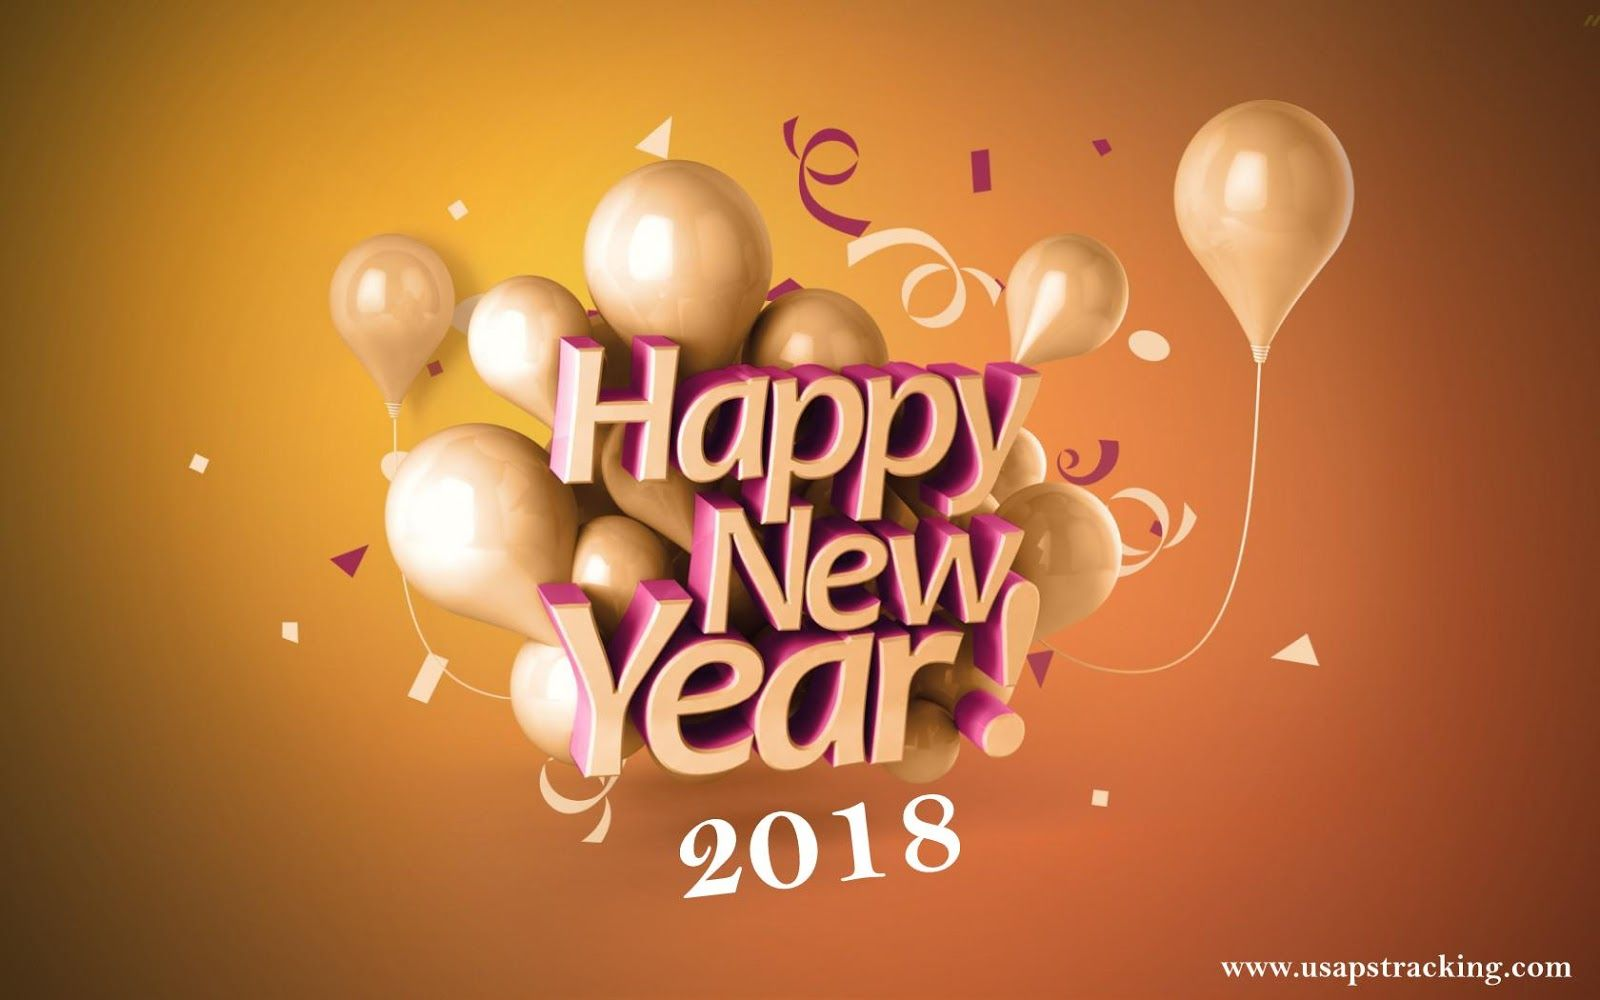 Happy New Year 2018 Wishes Images For Facebook Whats App Instagram